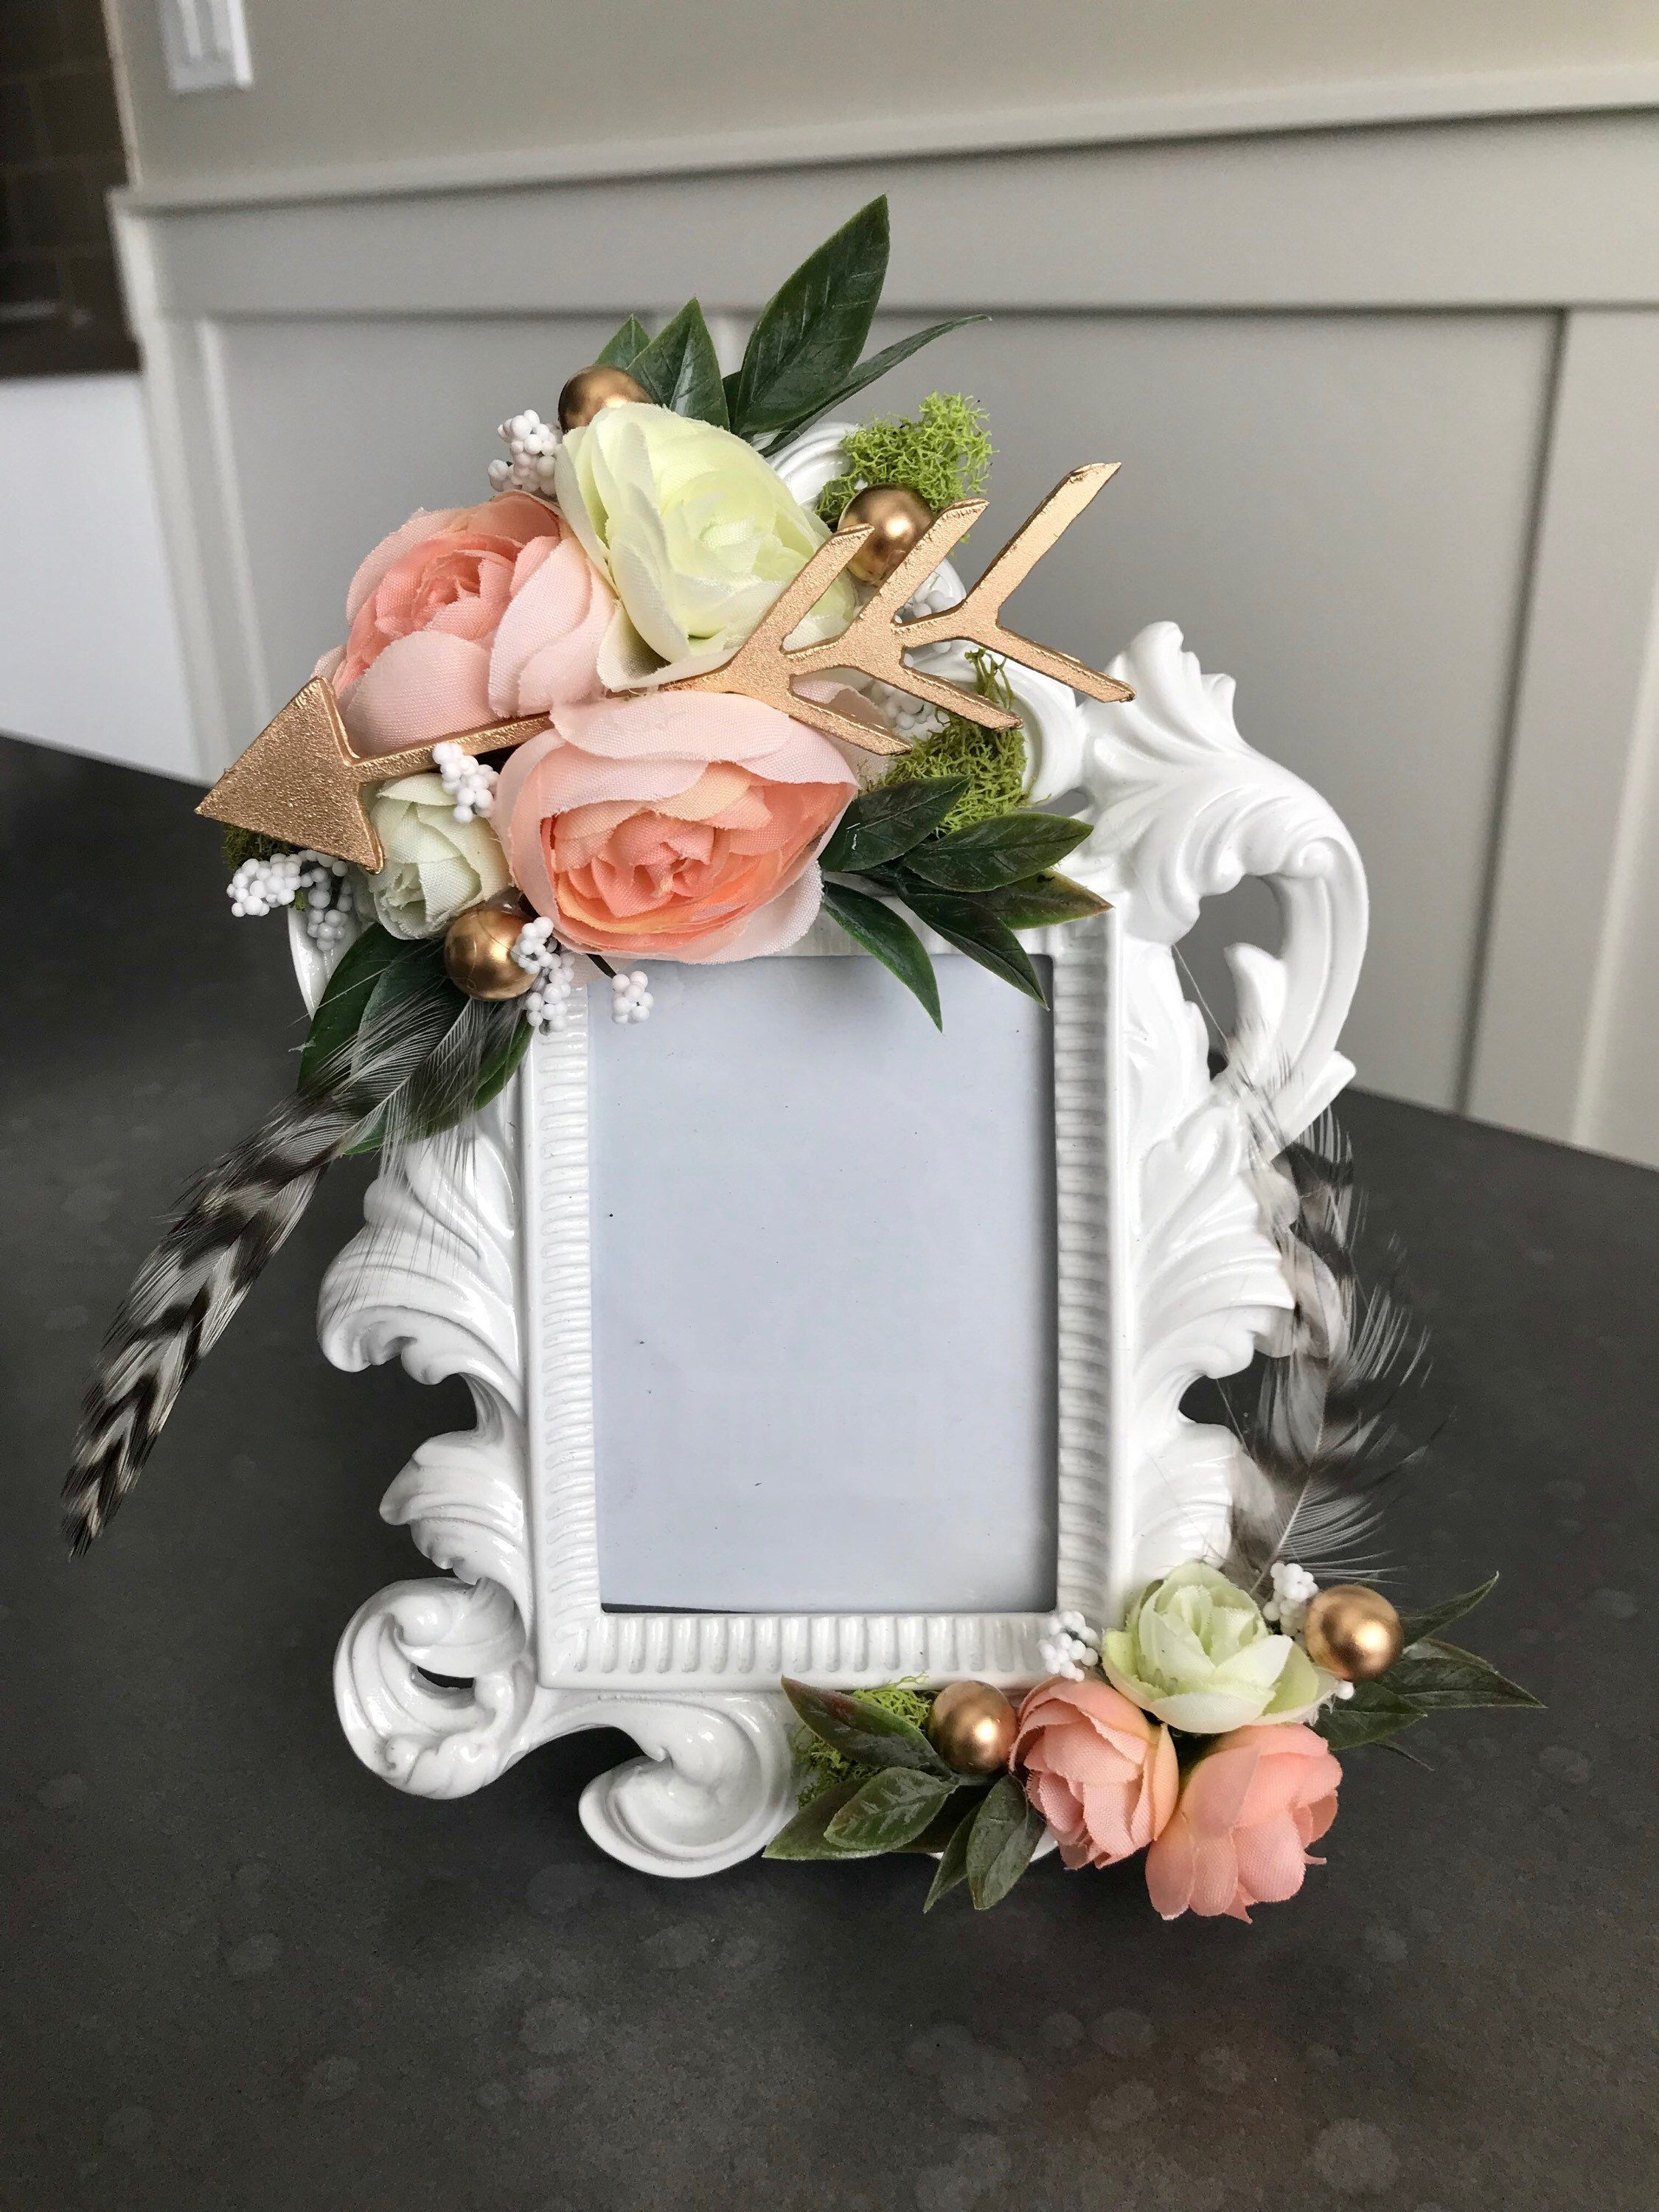 Boho Flower Frame Coachella, Baby Shower, Wedding, Nursery, Shabby Chic,